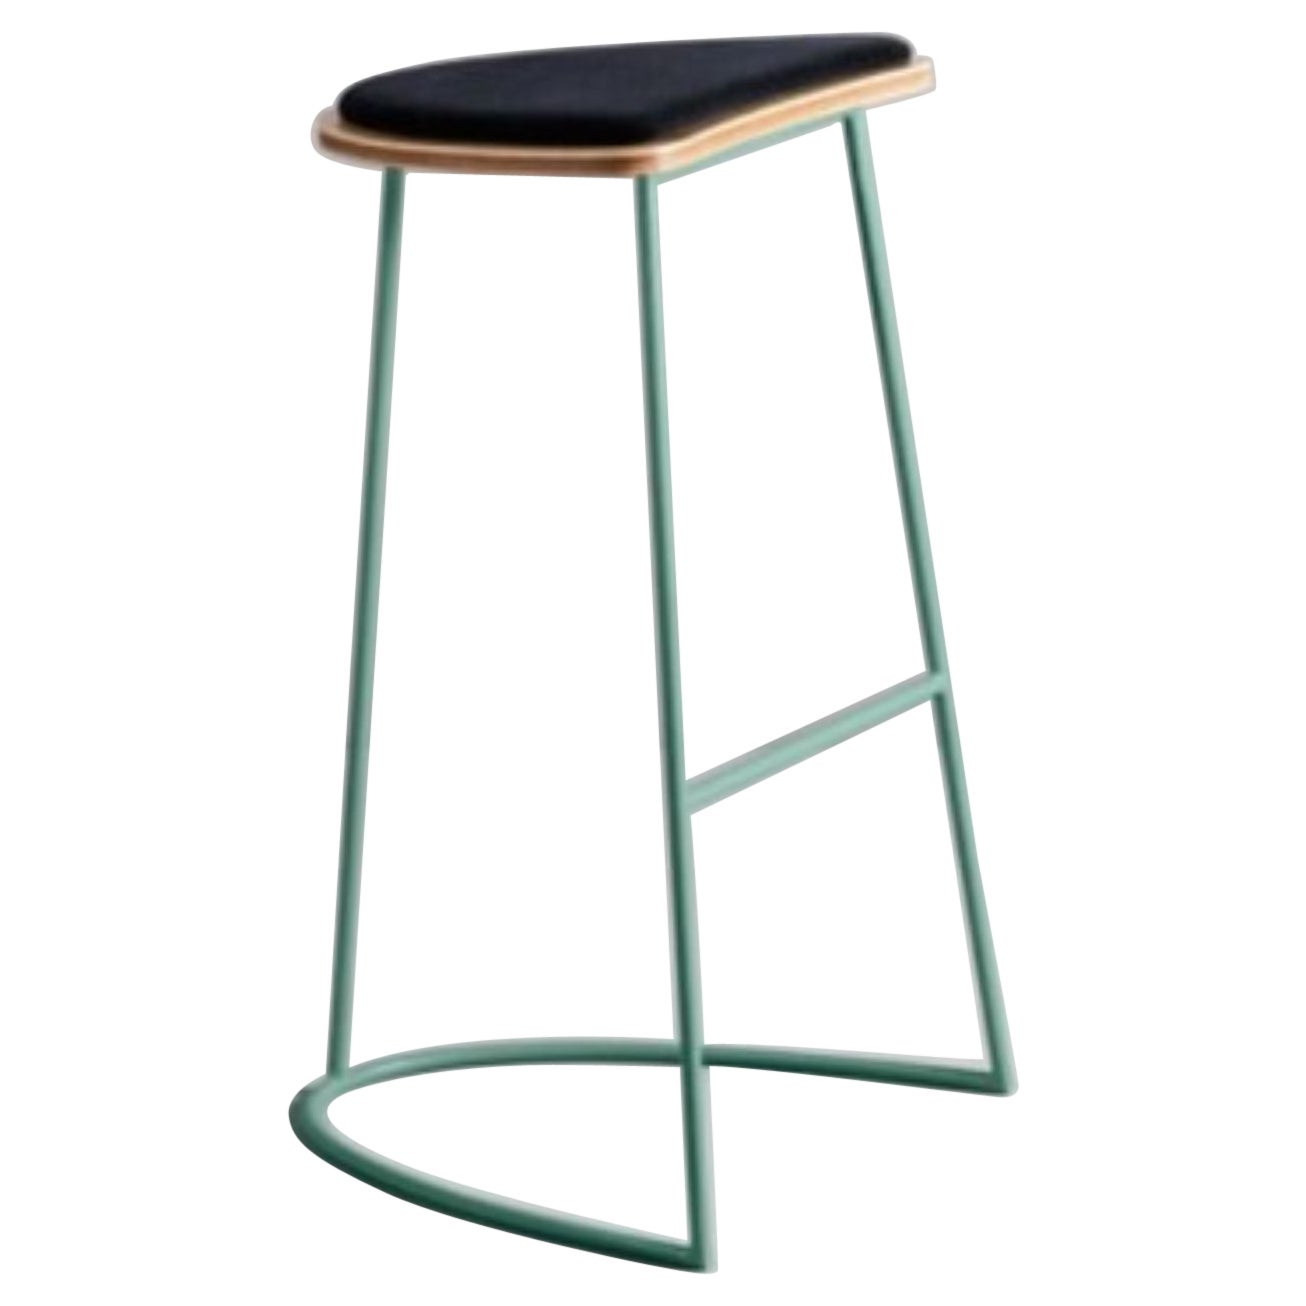 Boomerang Stool without Backrest by Cardeoli